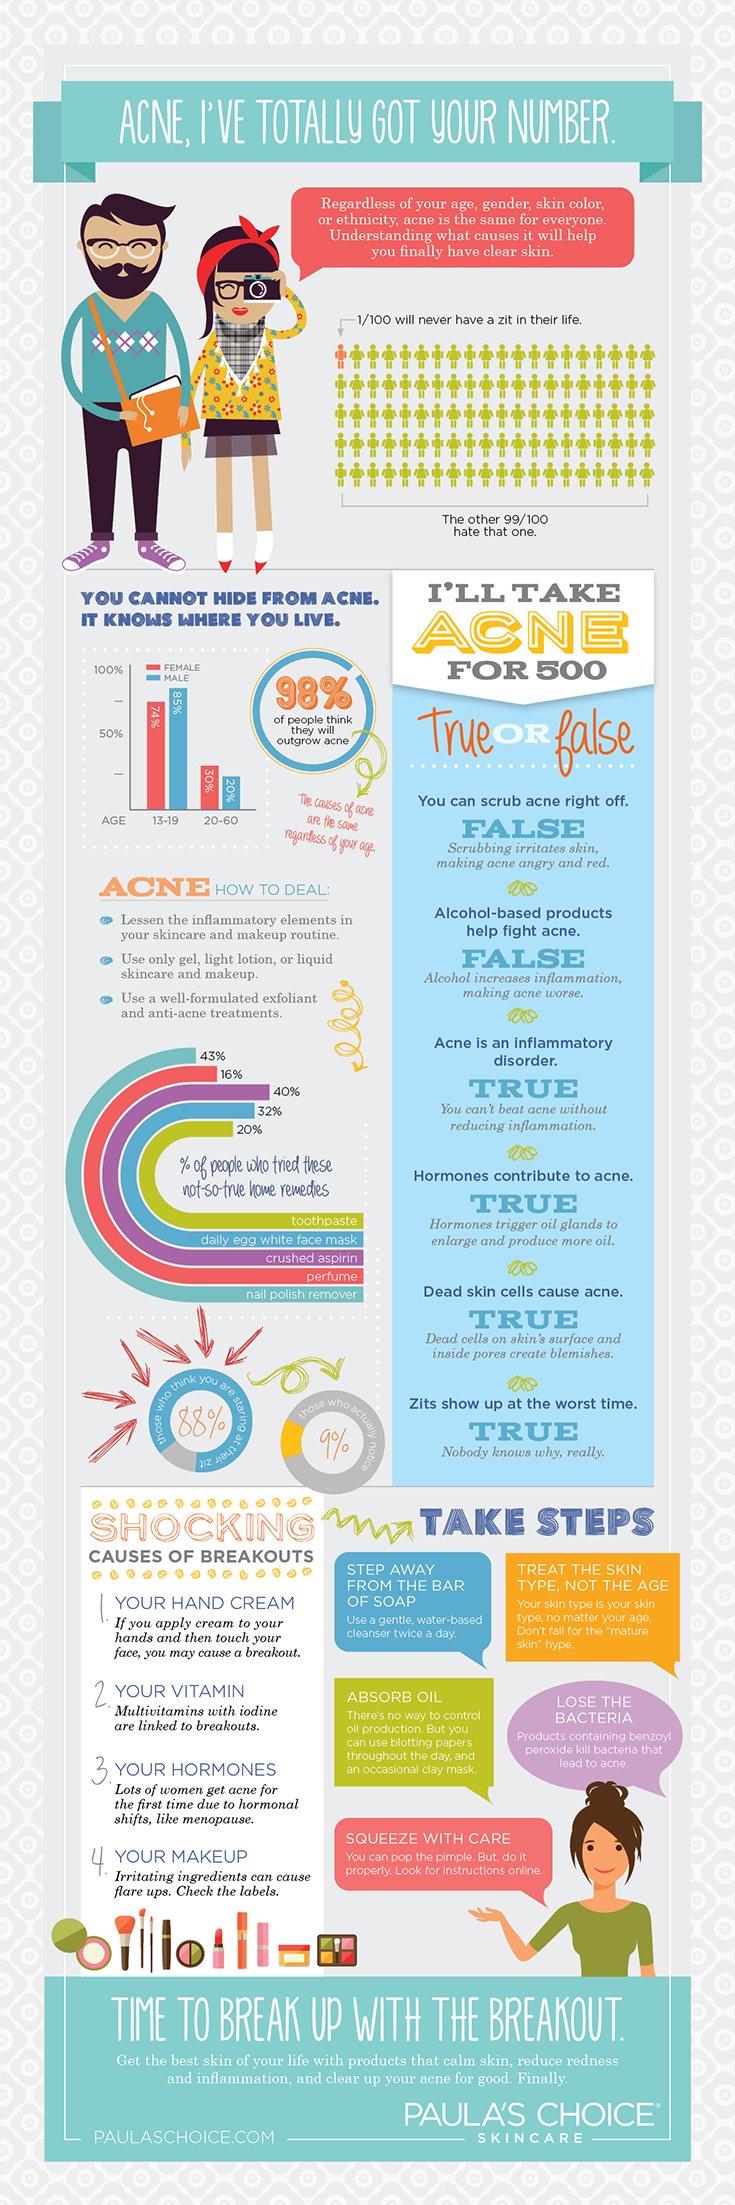 acne-infographic.png